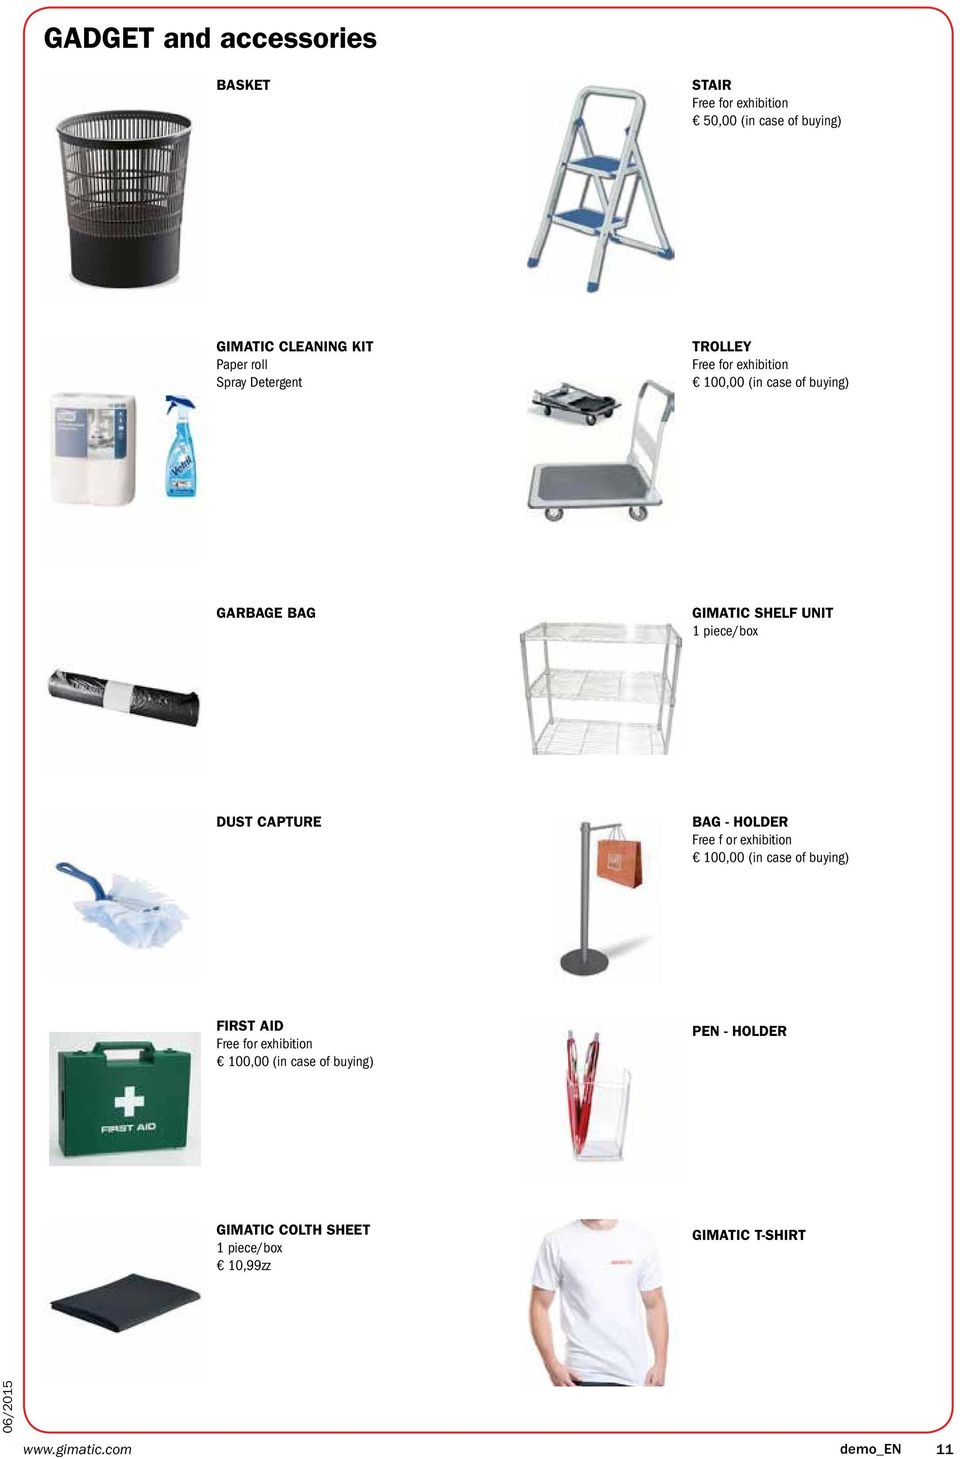 DUST CAPTURE BAG - HOLDER Free f or exhibition 100,00 (in case of buying) FIRST AID Free for exhibition 100,00